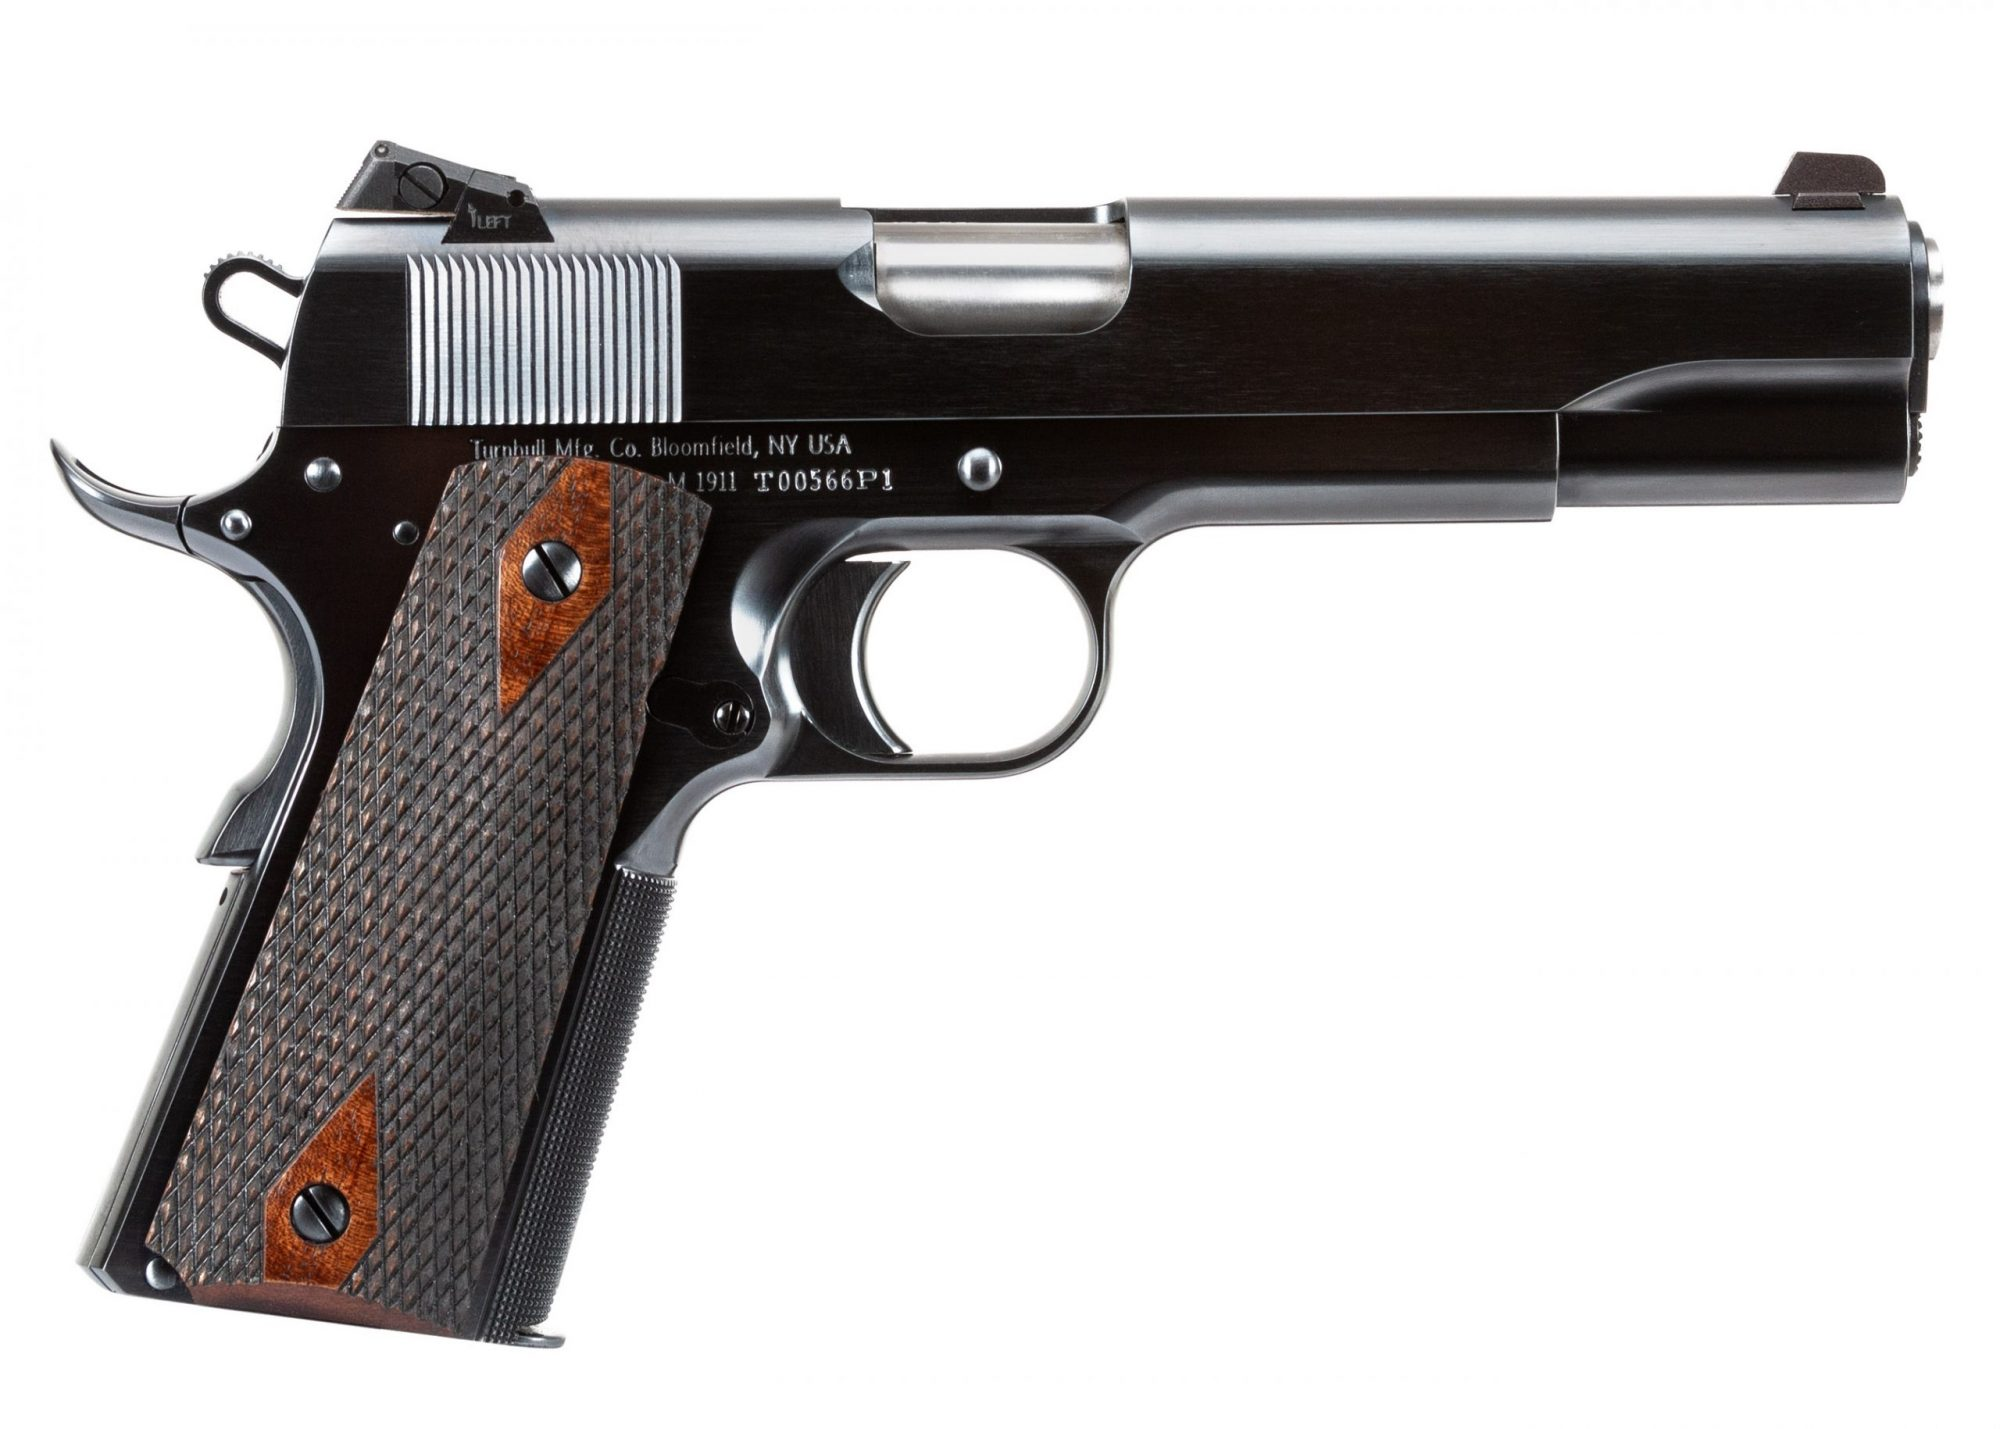 Photo of a Turnbull Model 1911 Government, featuring period-correct charcoal bluing